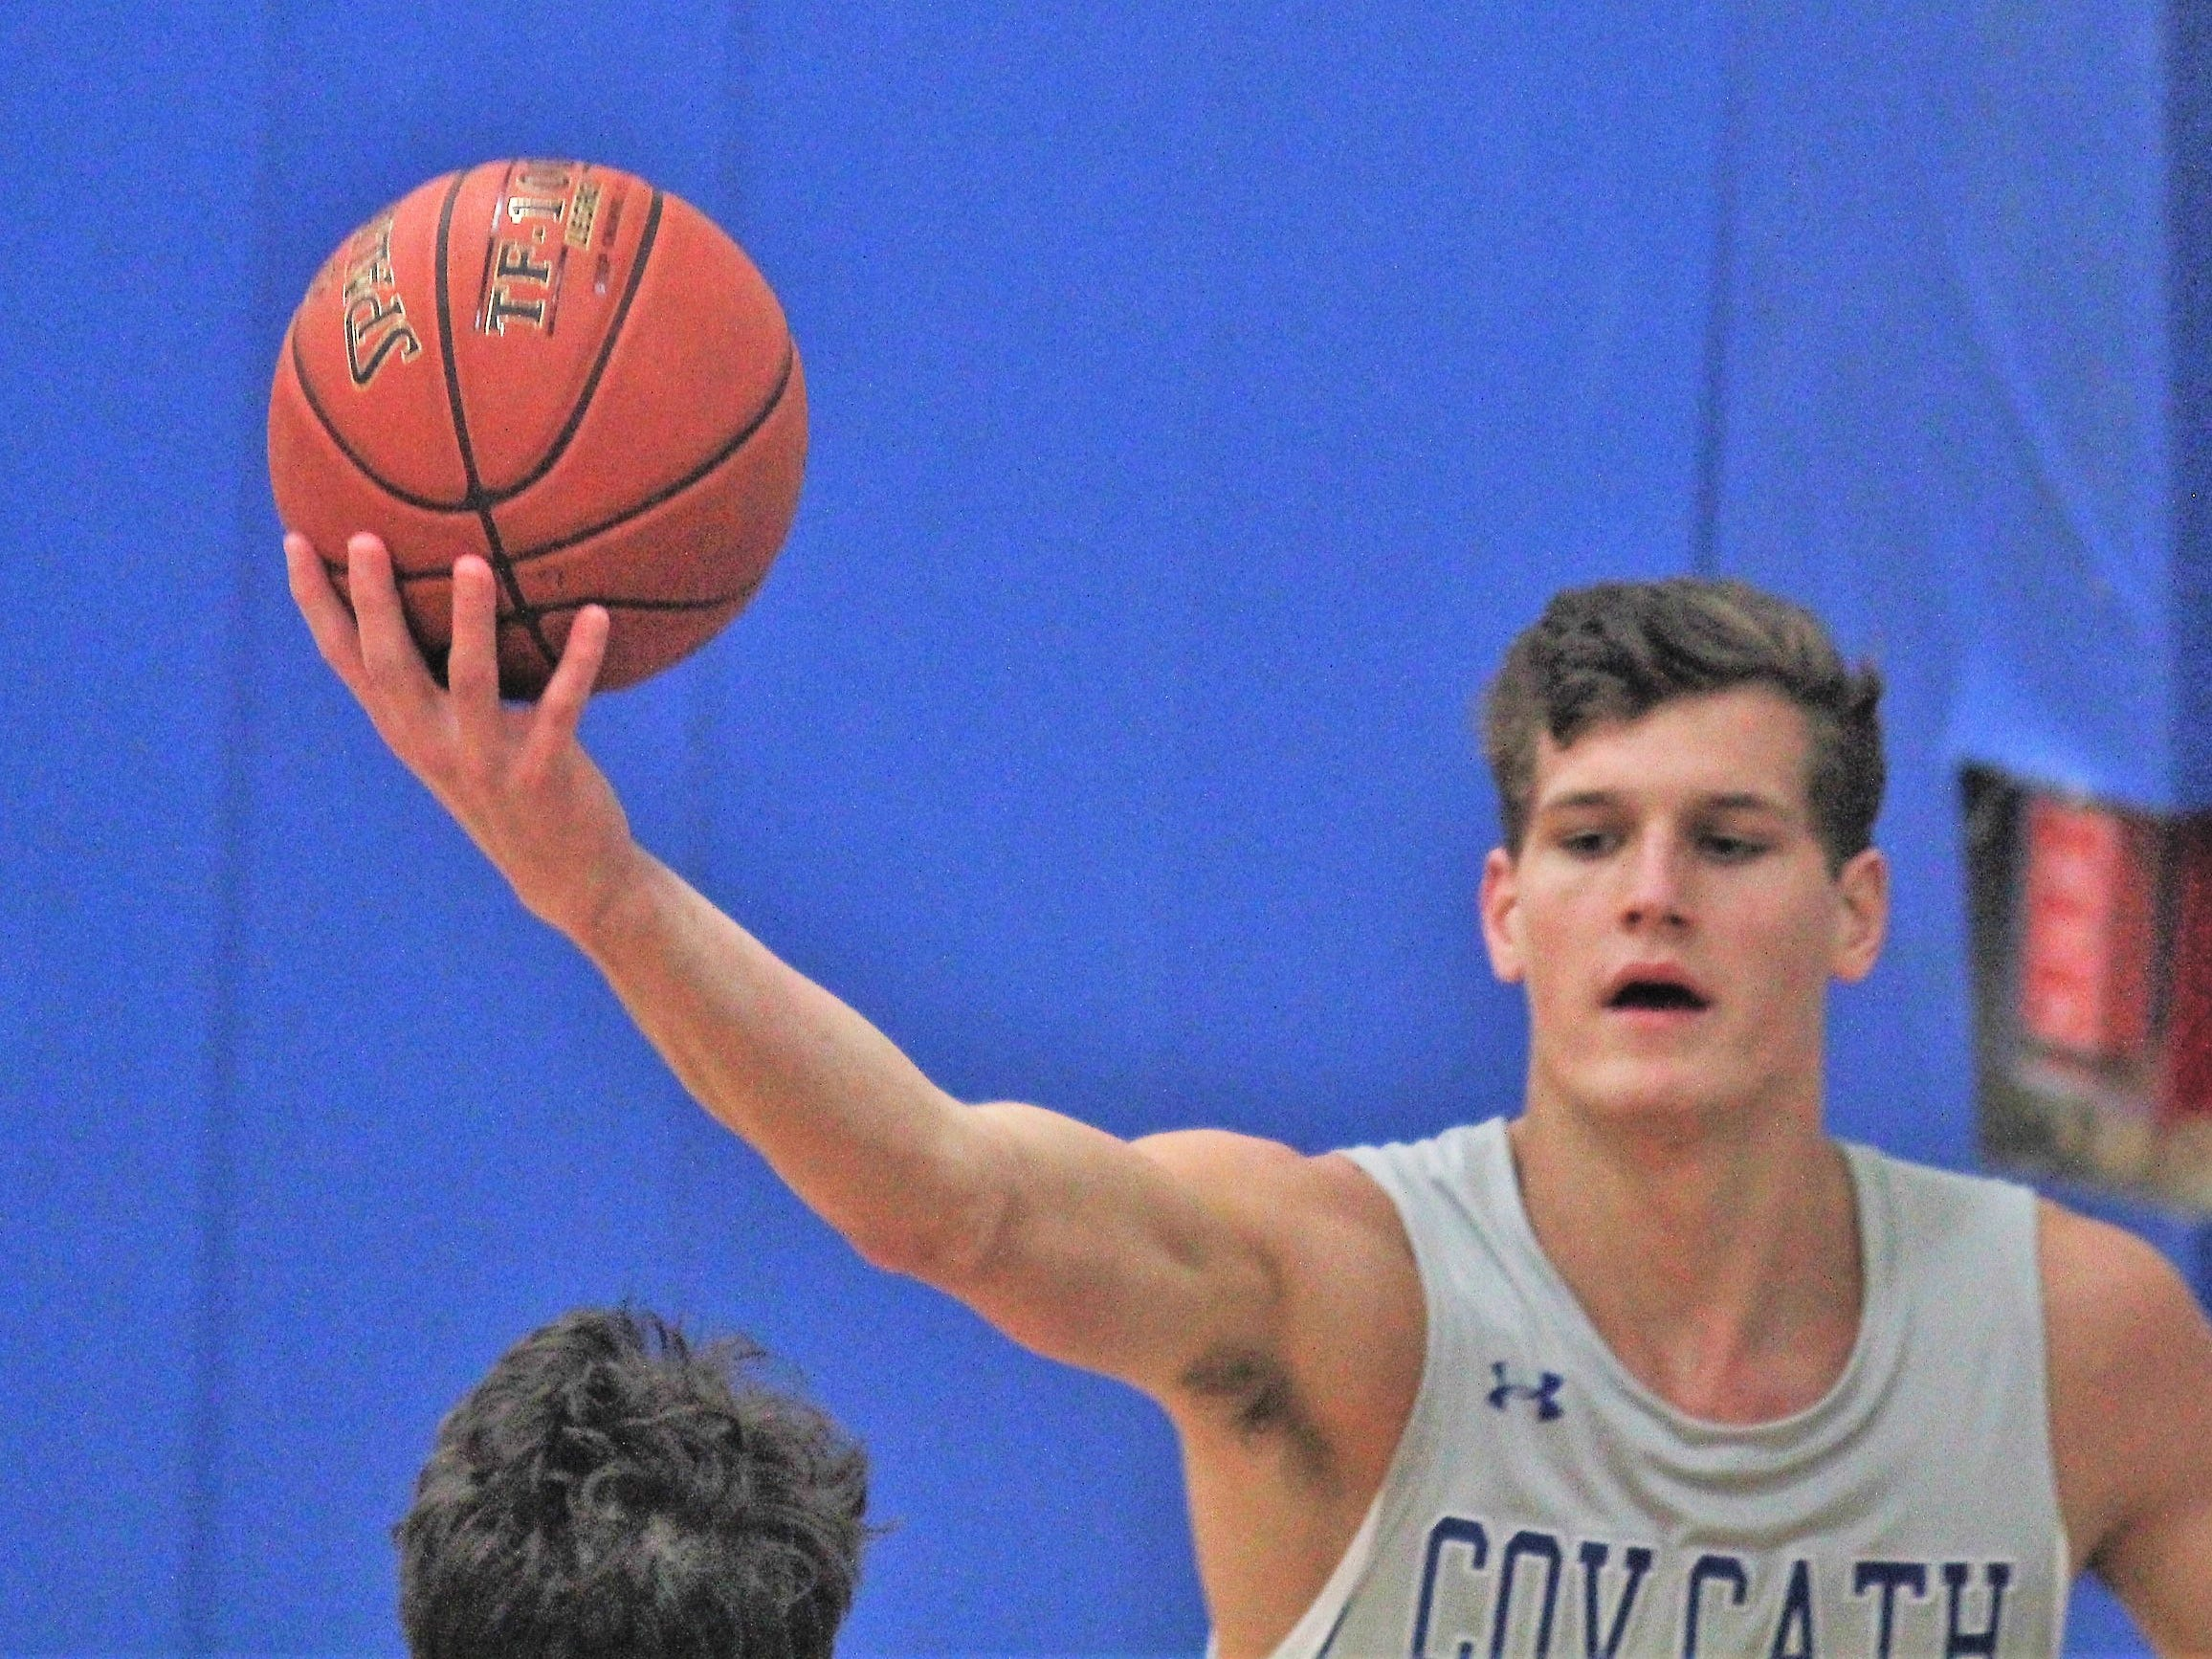 CovCath senior Nick Thelen corrals the ball as Covington Catholic defeats Cooper 53-47 in boys basketball Jan. 11, 2019 at CovCath.